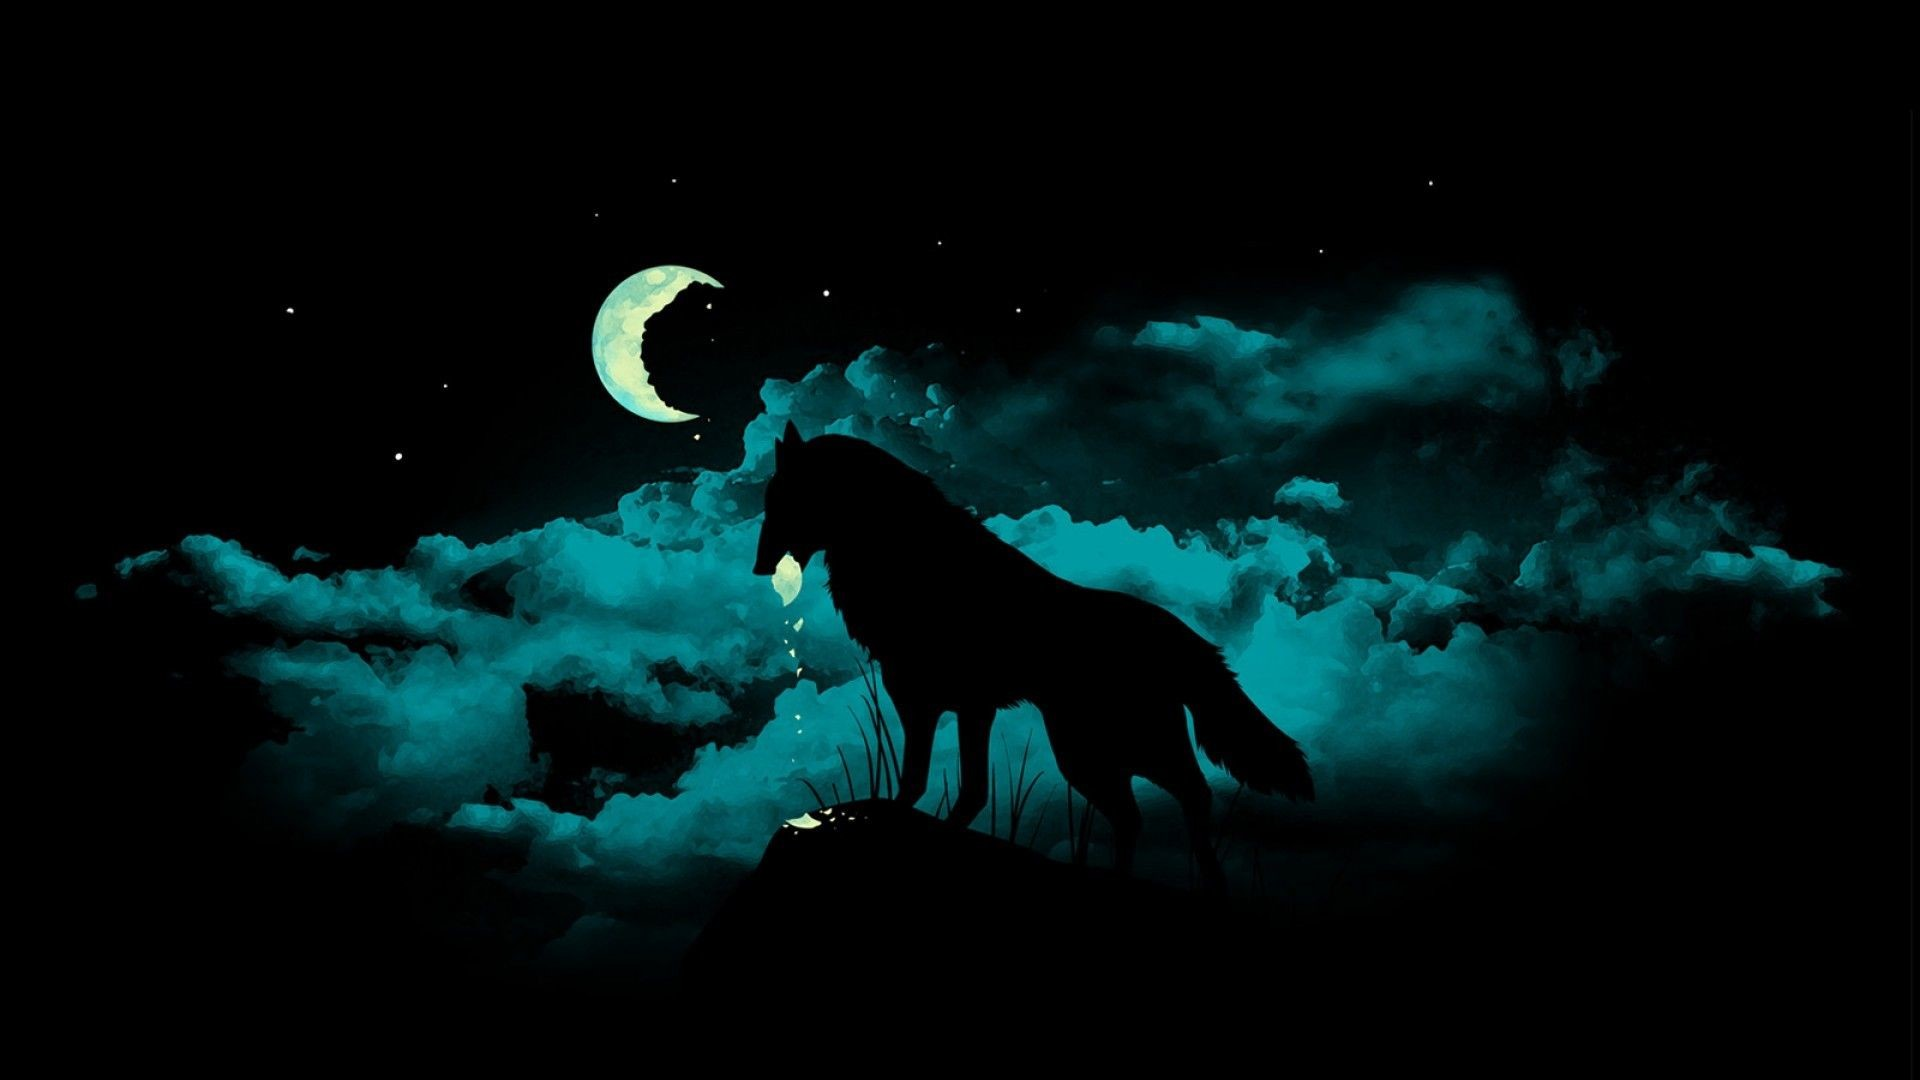 1920x1080 Wallpapers For > Black Wolf Backgrounds